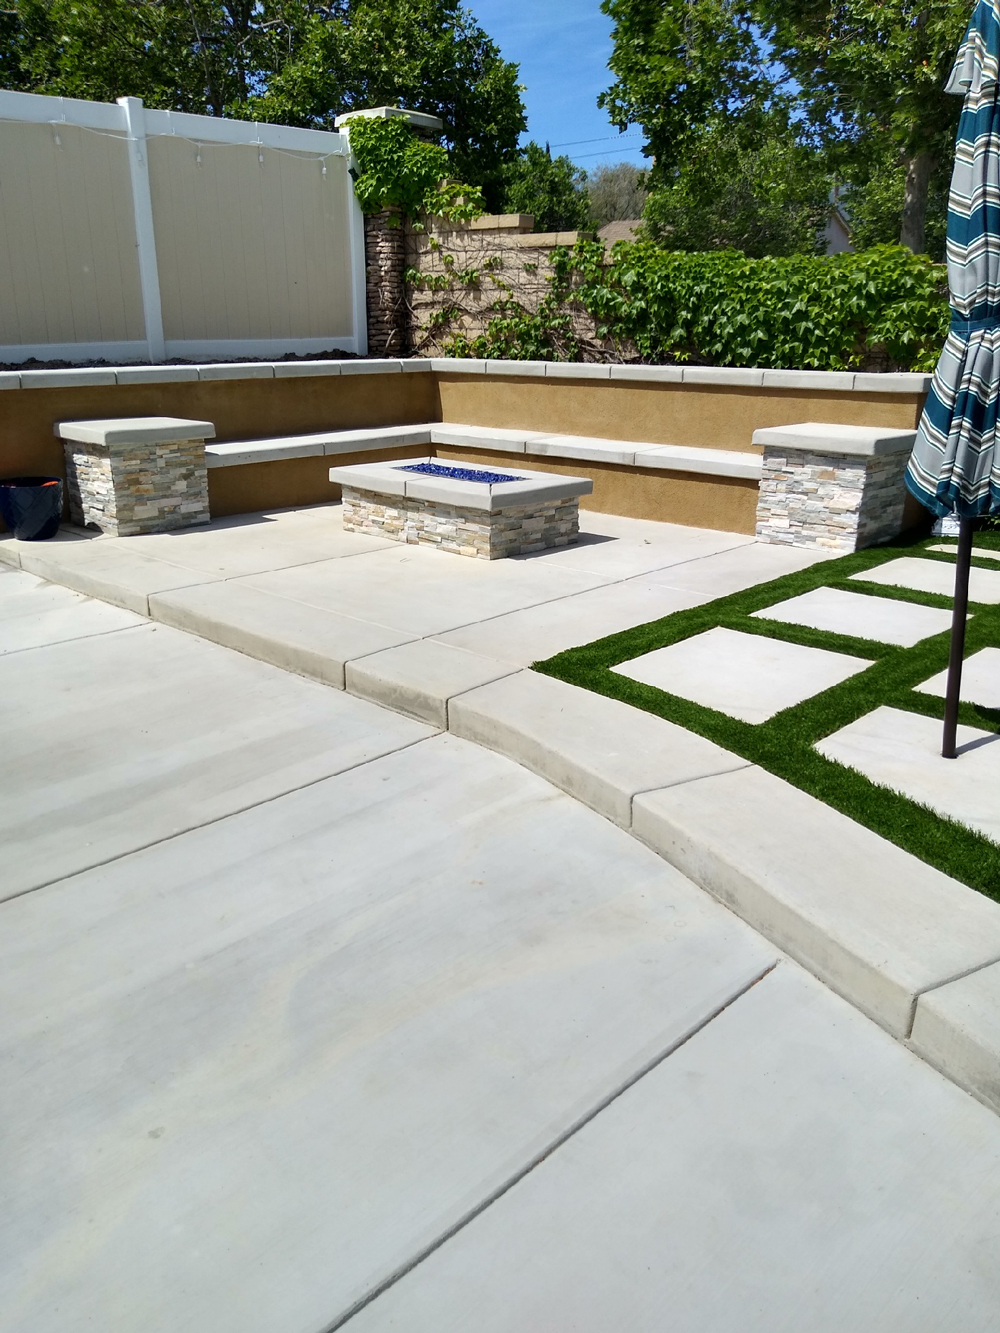 Backyard Renovation with Concrete & Artifical Turf